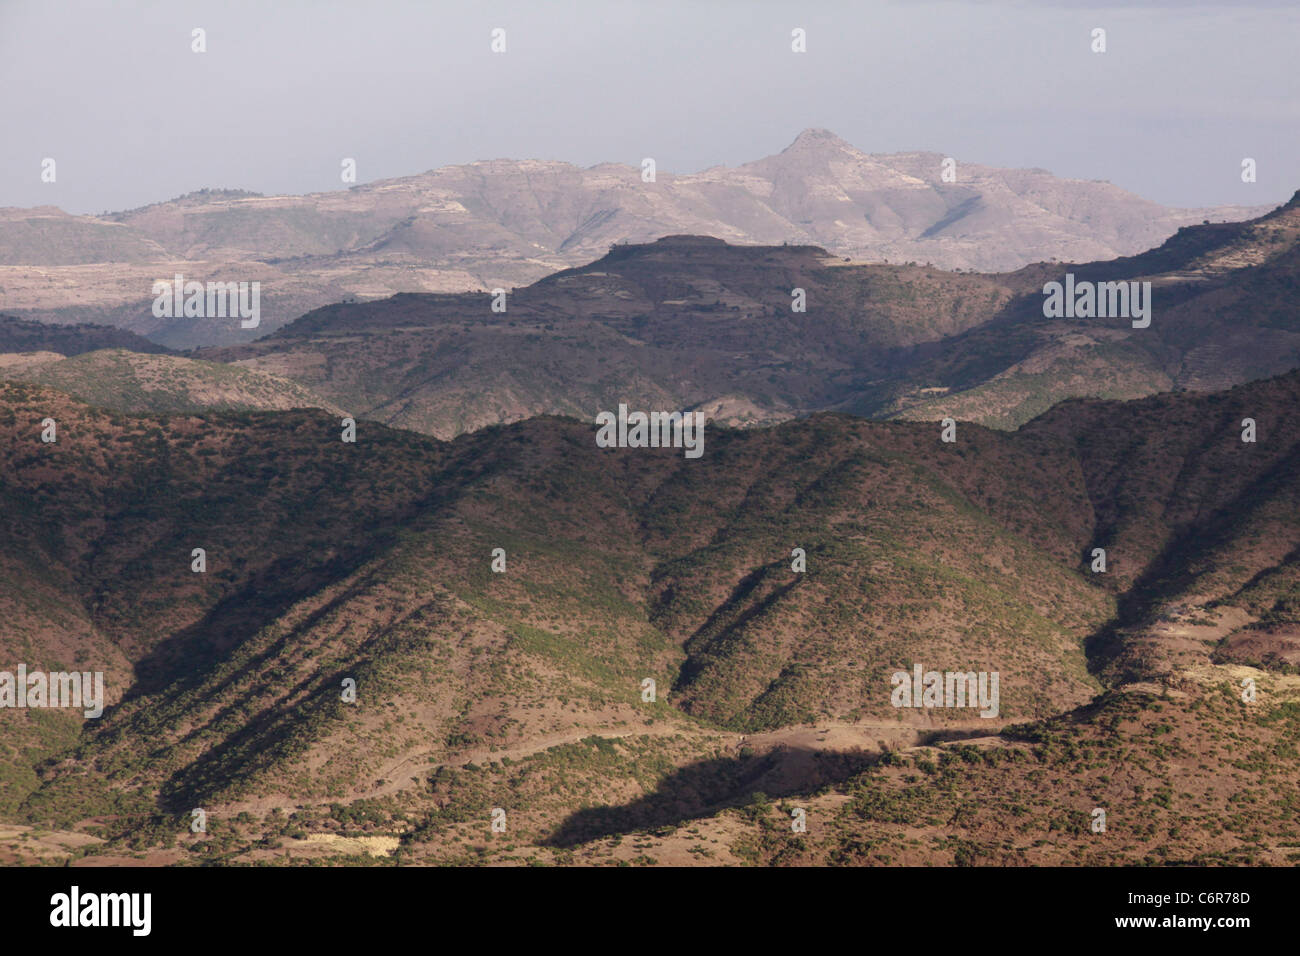 Lalibela landscape with a view over mountain ranges - Stock Image